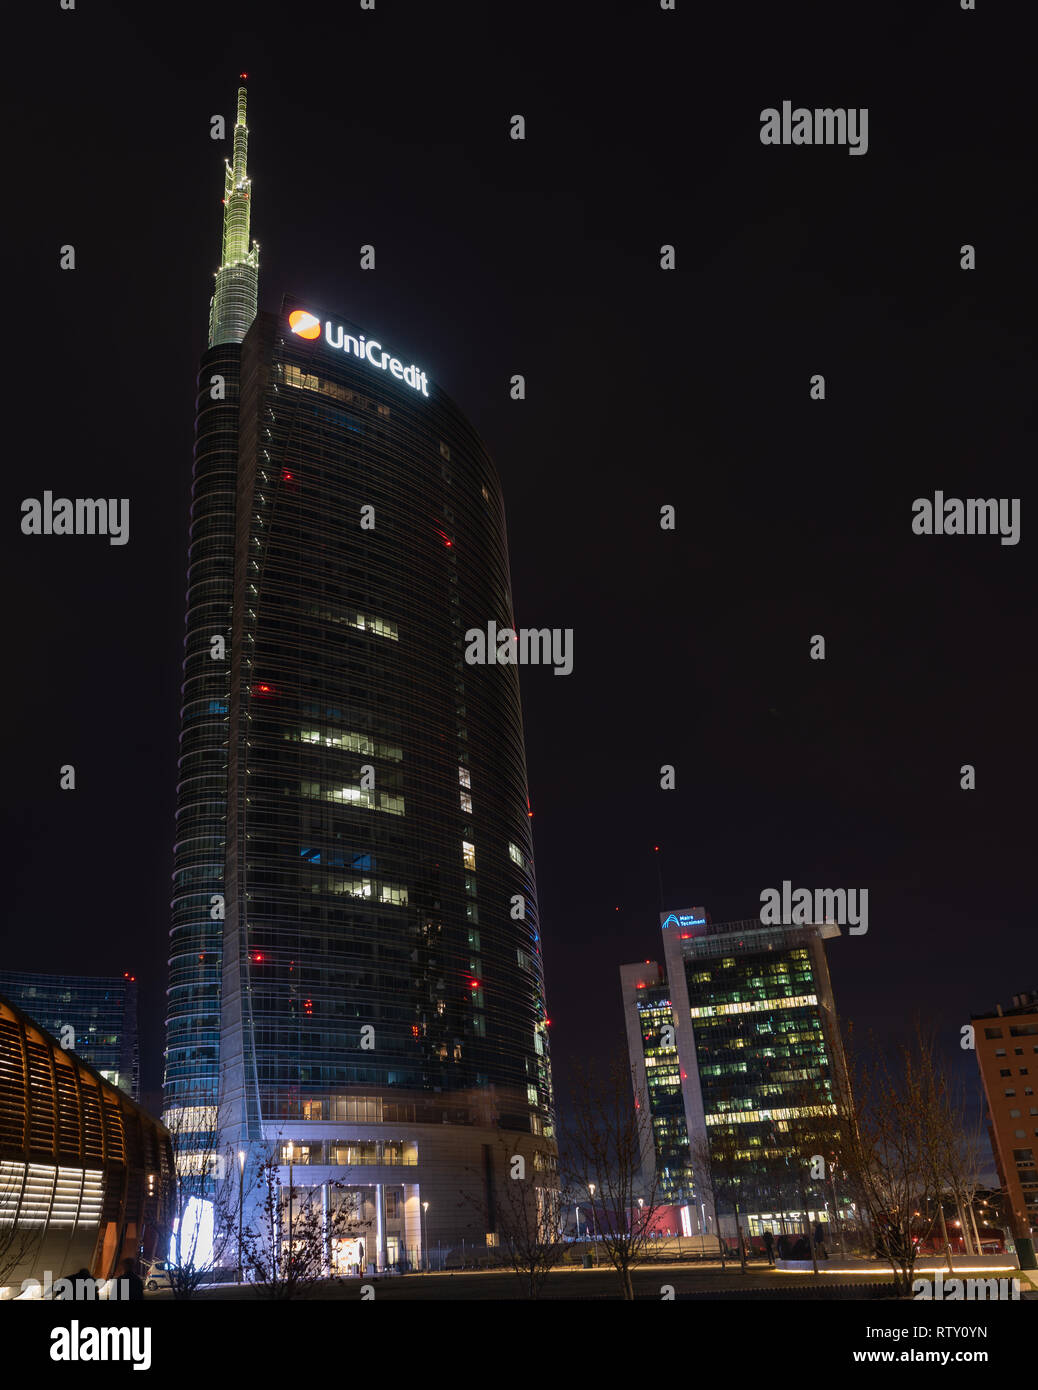 03/02/2019 Mialn, Italy: Unicredit tower, Gae Aulenti square, financial district of milan seen from the new park, the trees library. nocturnal scene Stock Photo